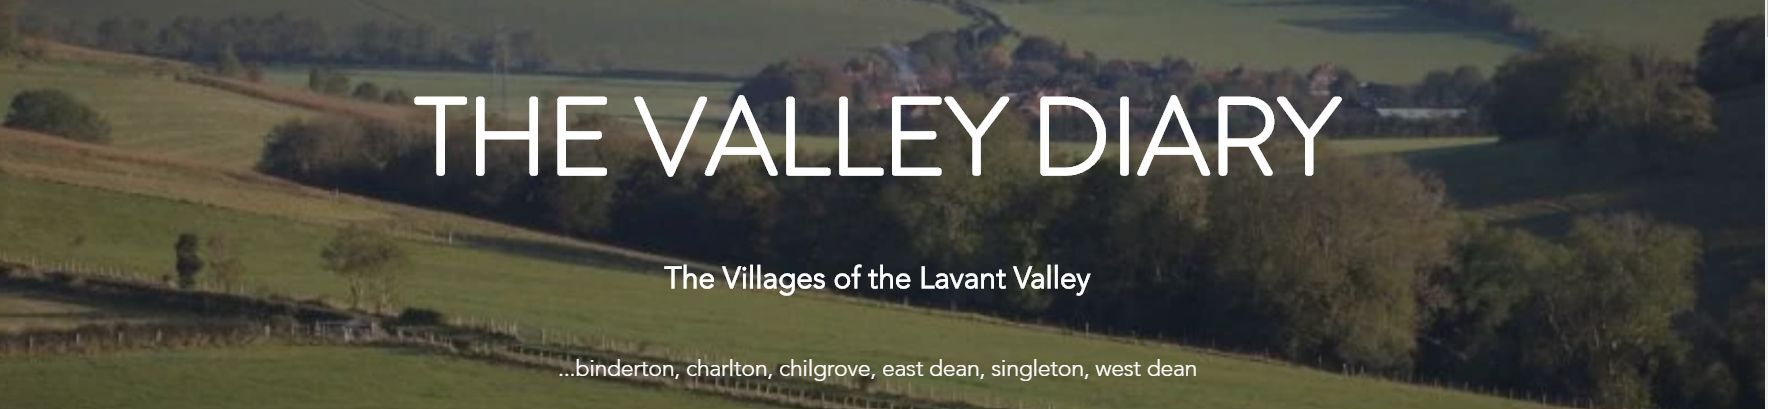 The Valley Diary